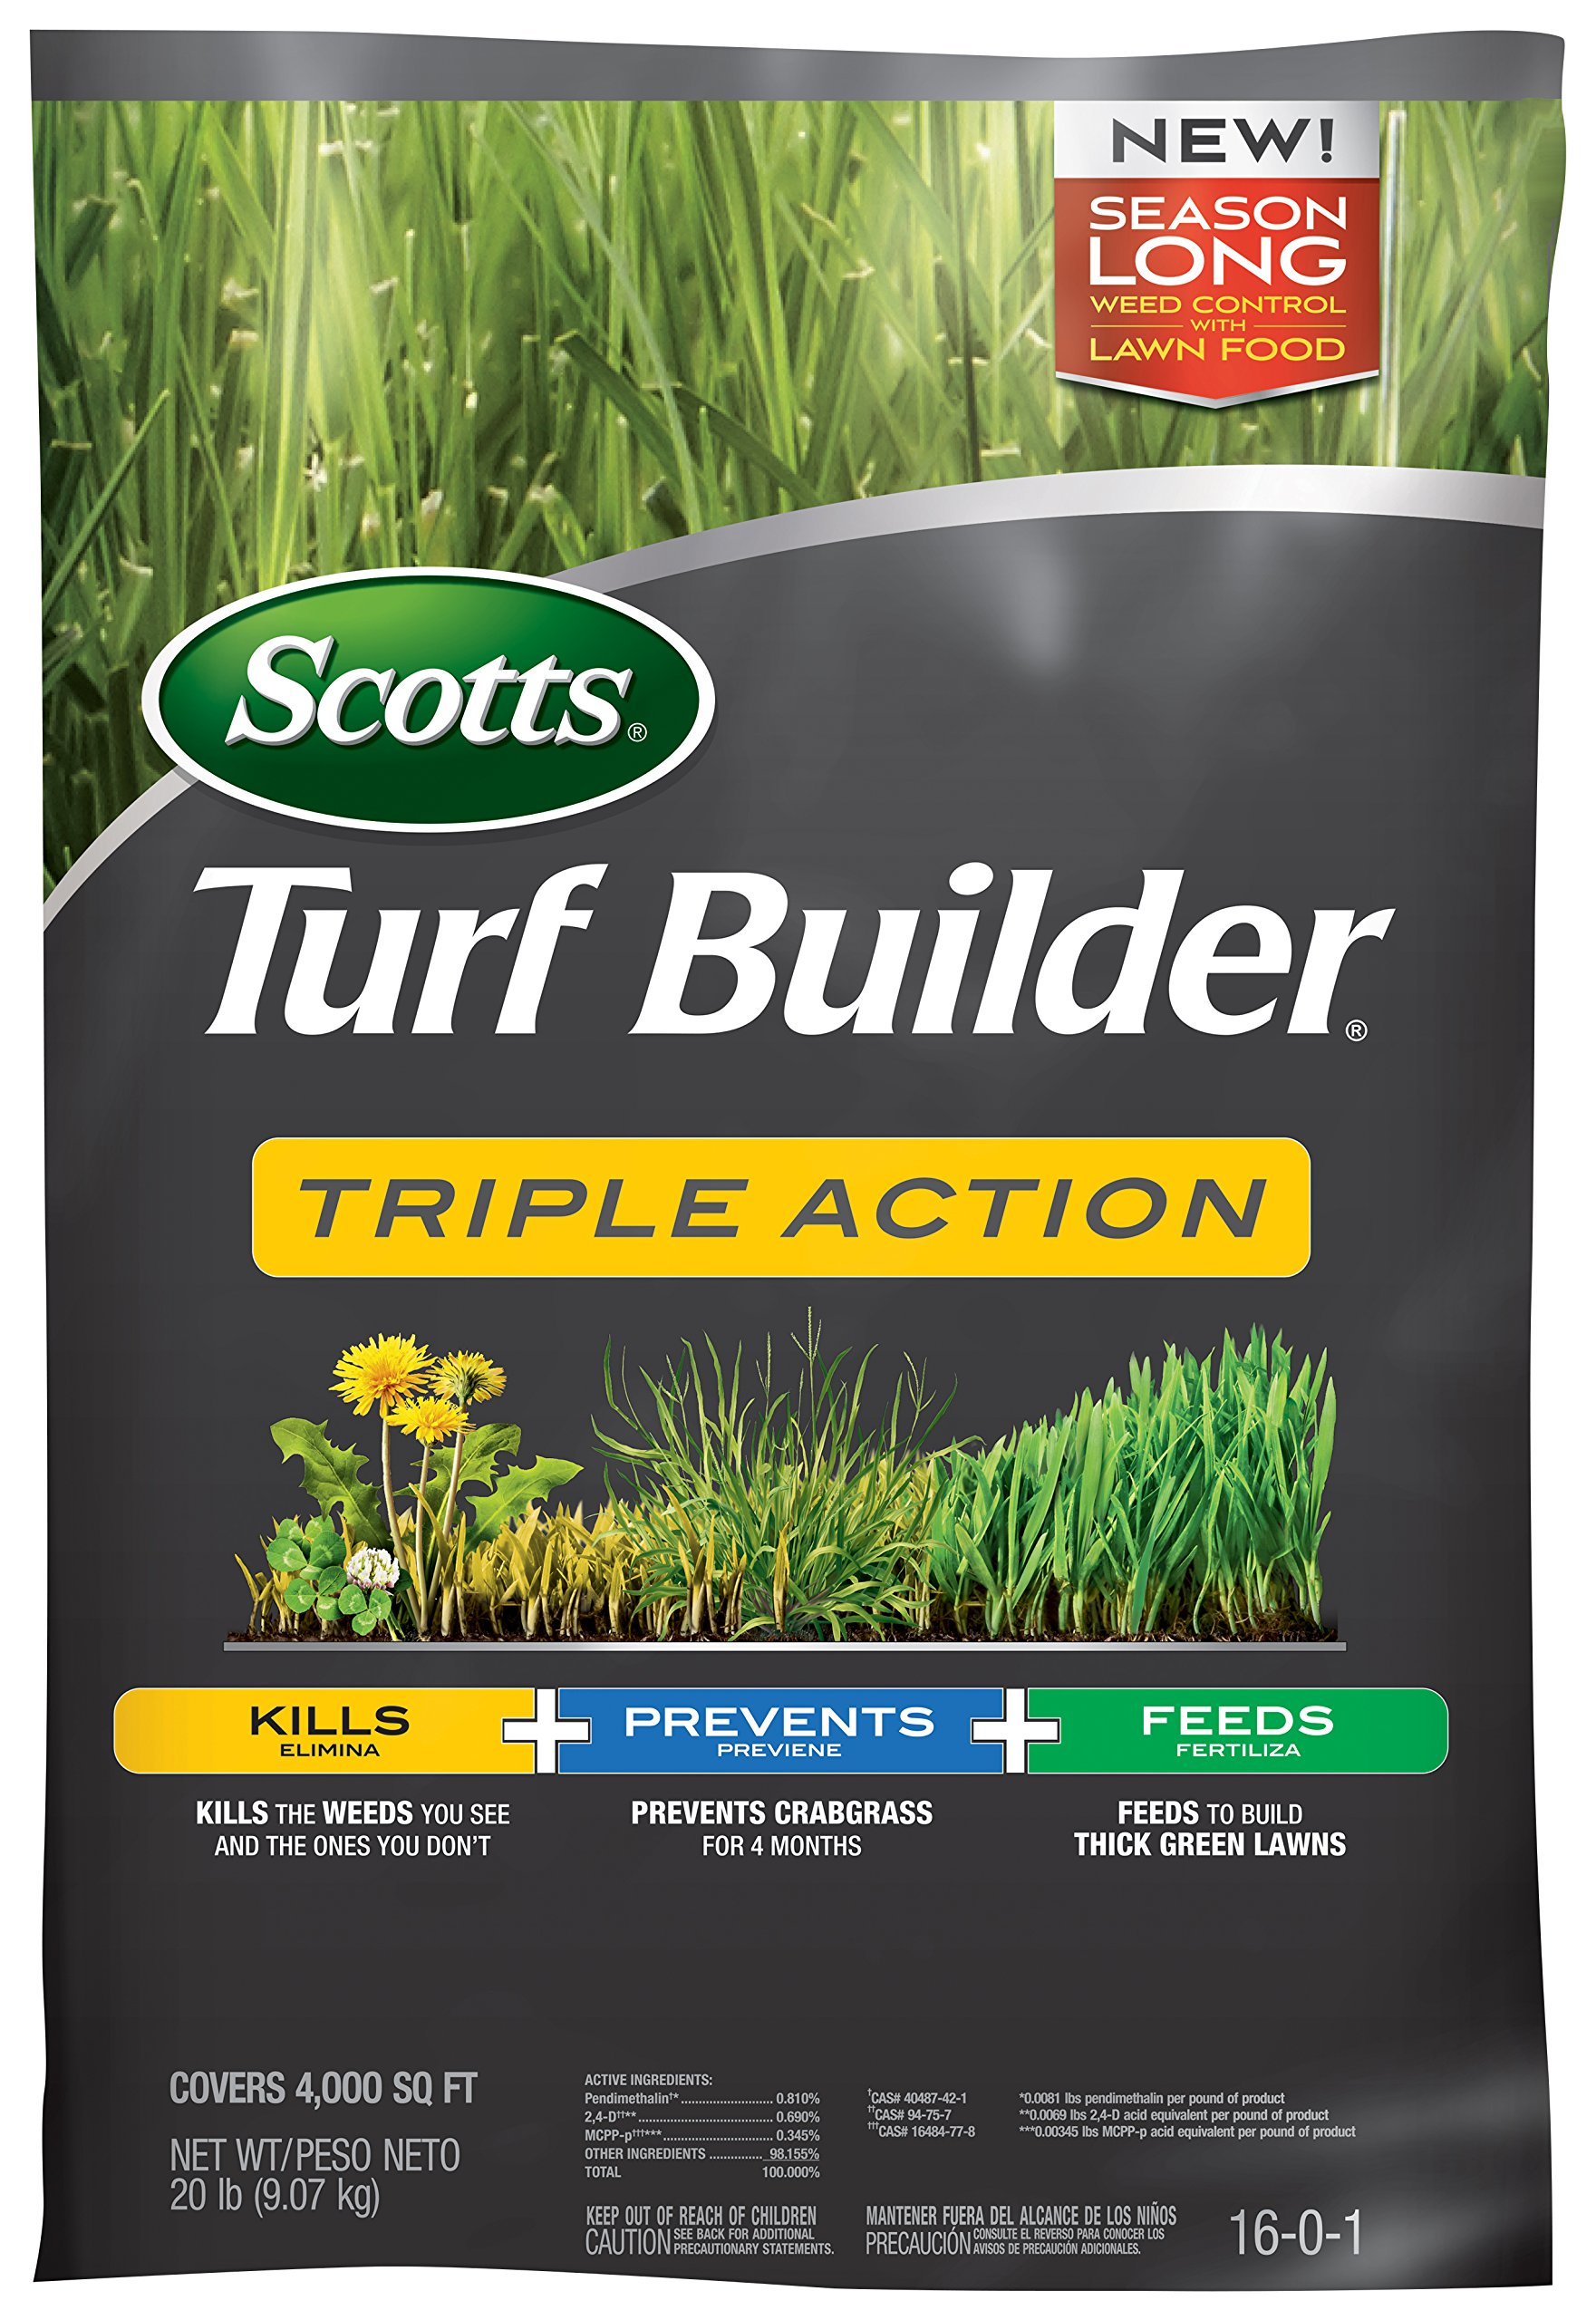 Scotts Turf Builder Triple Action 4,000 Sq. Ft. , Kills Weeds like Dandelions & Clover, Prevents Crabgrass For 4 Months, Feeds & Fertilizes To Build Thick Green Lawns | 26003